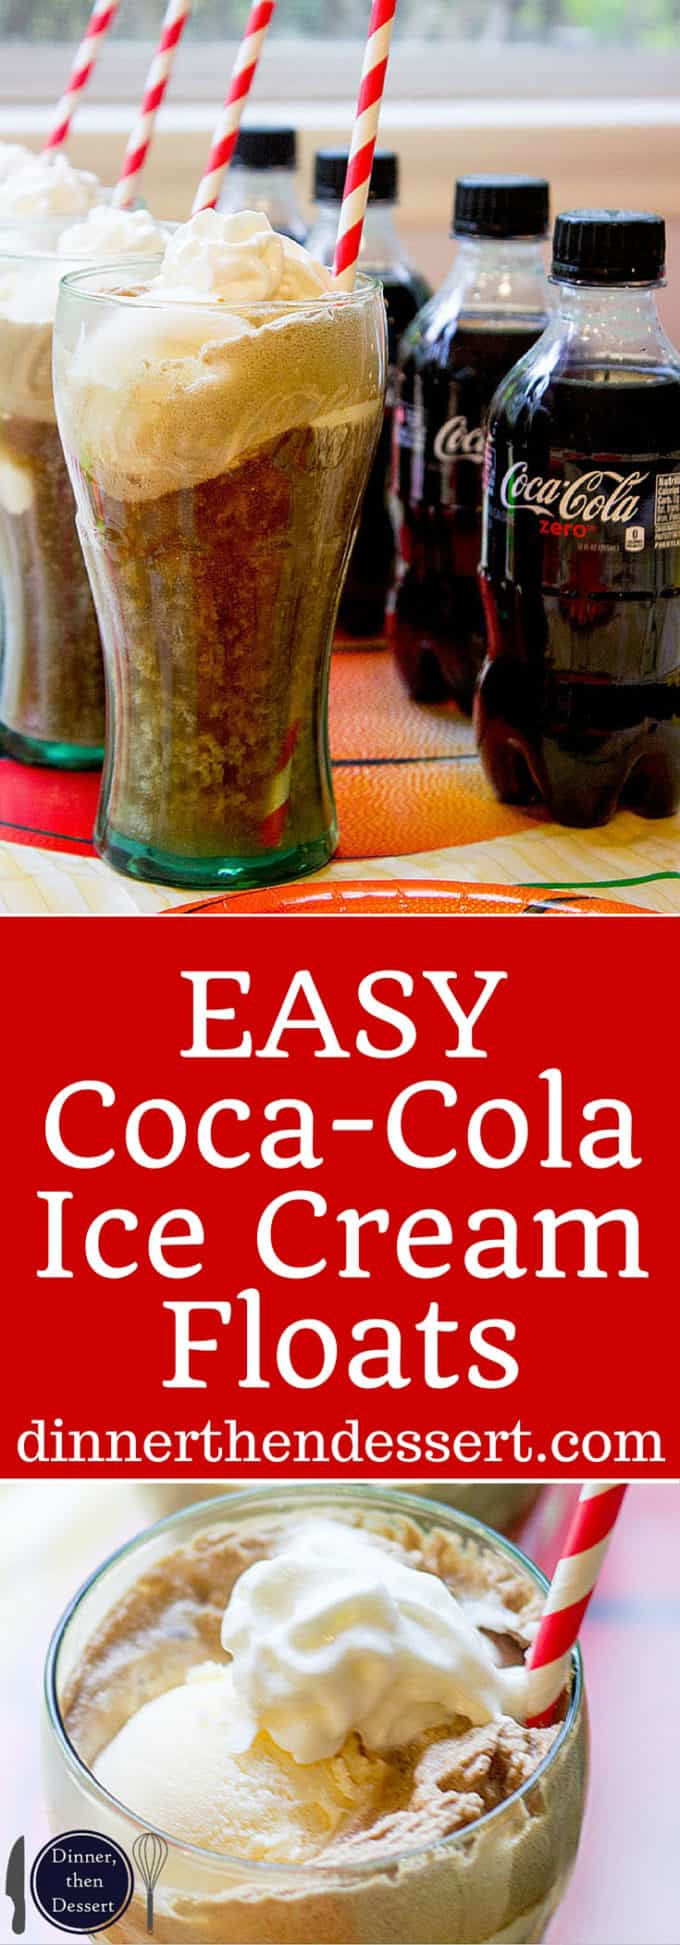 Delicious, EASY Coca-Cola Ice Cream Floats are a nostalgic throwback to childhood! AD. #Greattastetourney